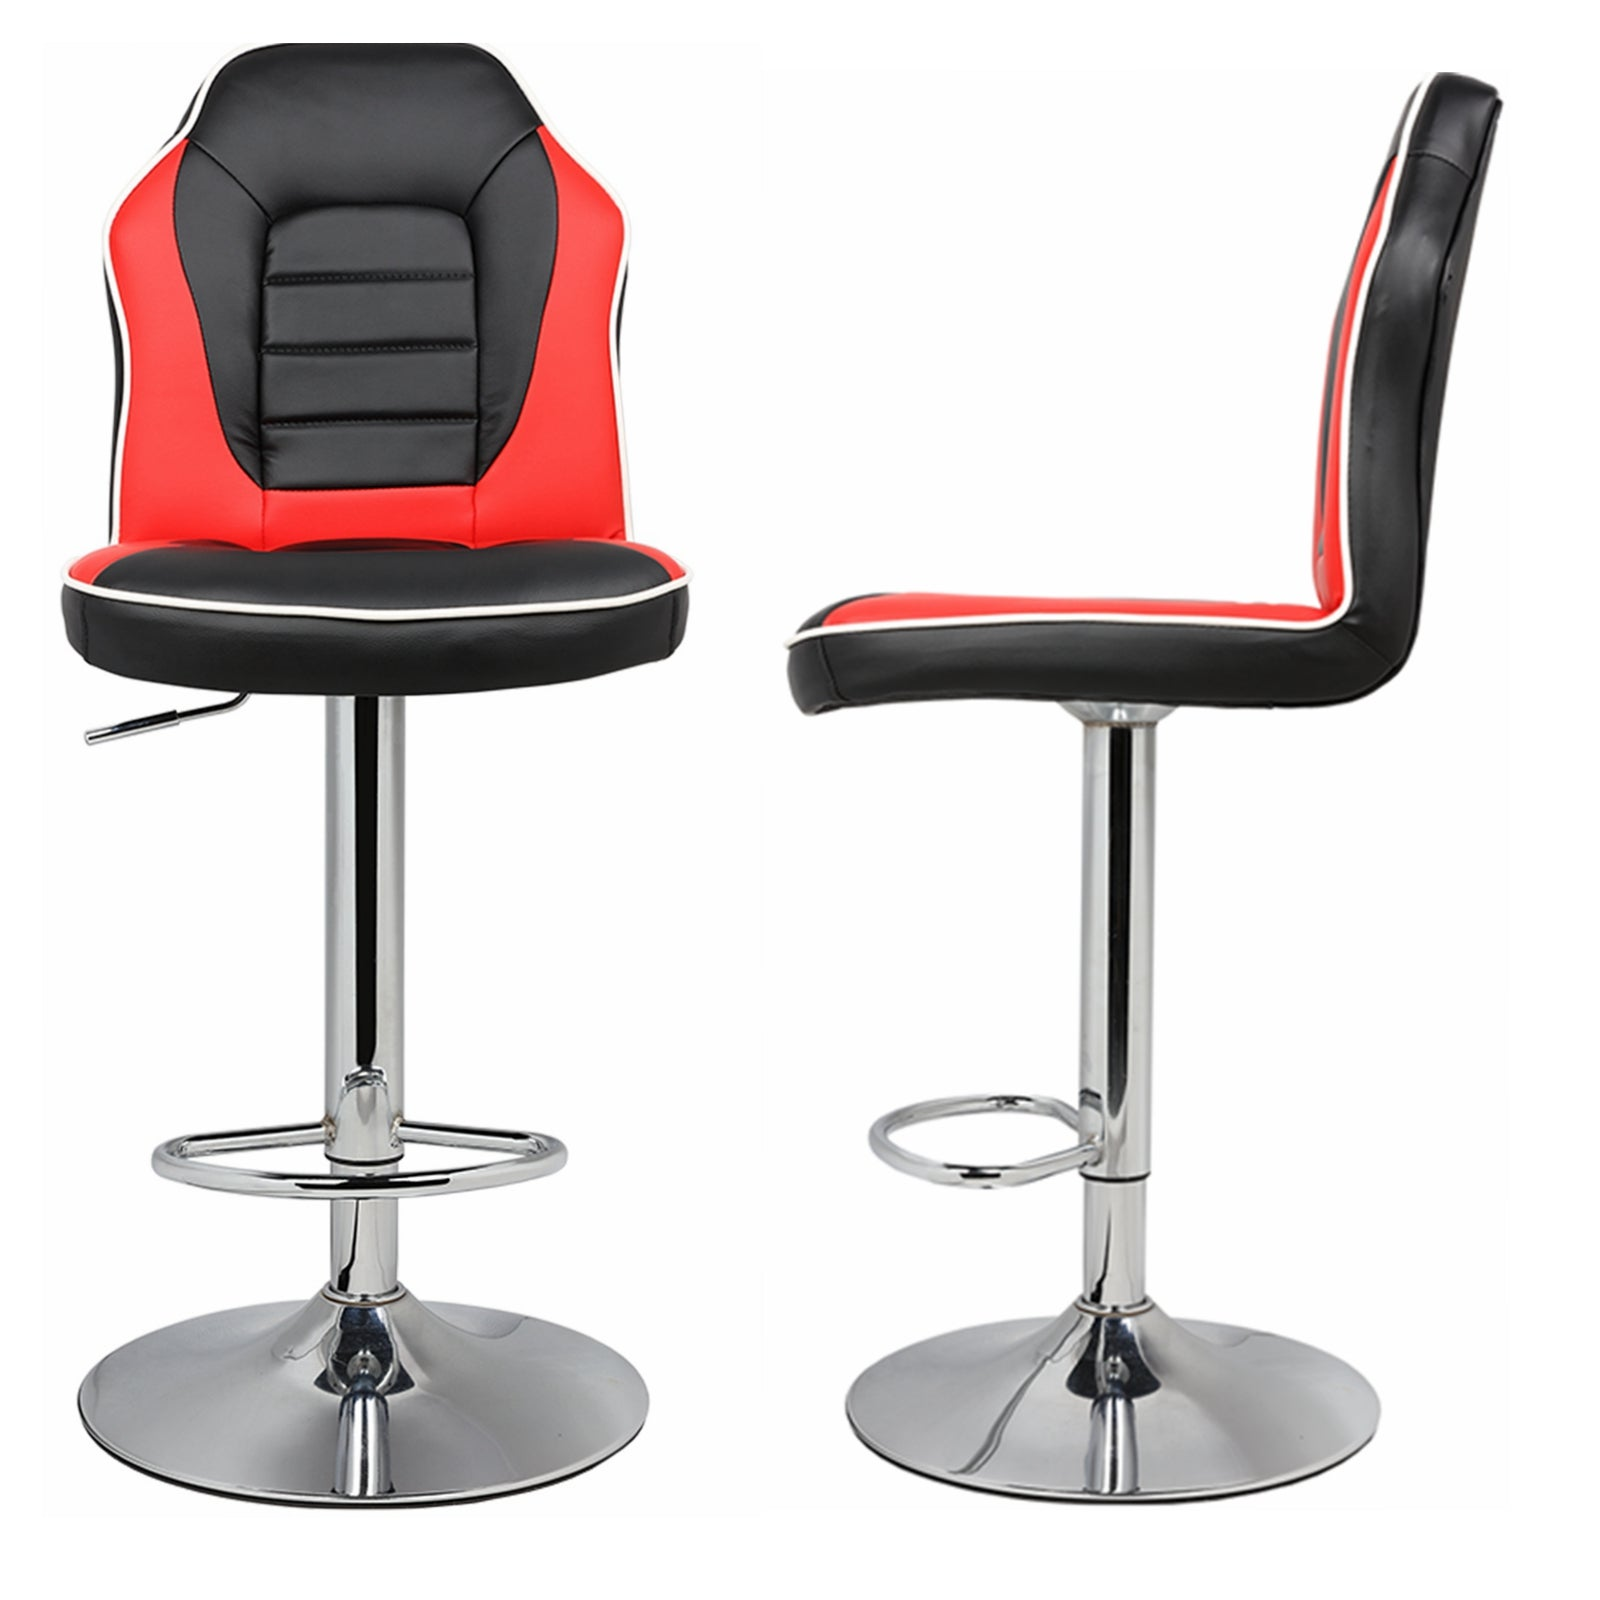 Amazing 2Pc Racing Seat Style Backed Bar Stools With Backs Counter Stools Kitchen Stools Black Red Gmtry Best Dining Table And Chair Ideas Images Gmtryco